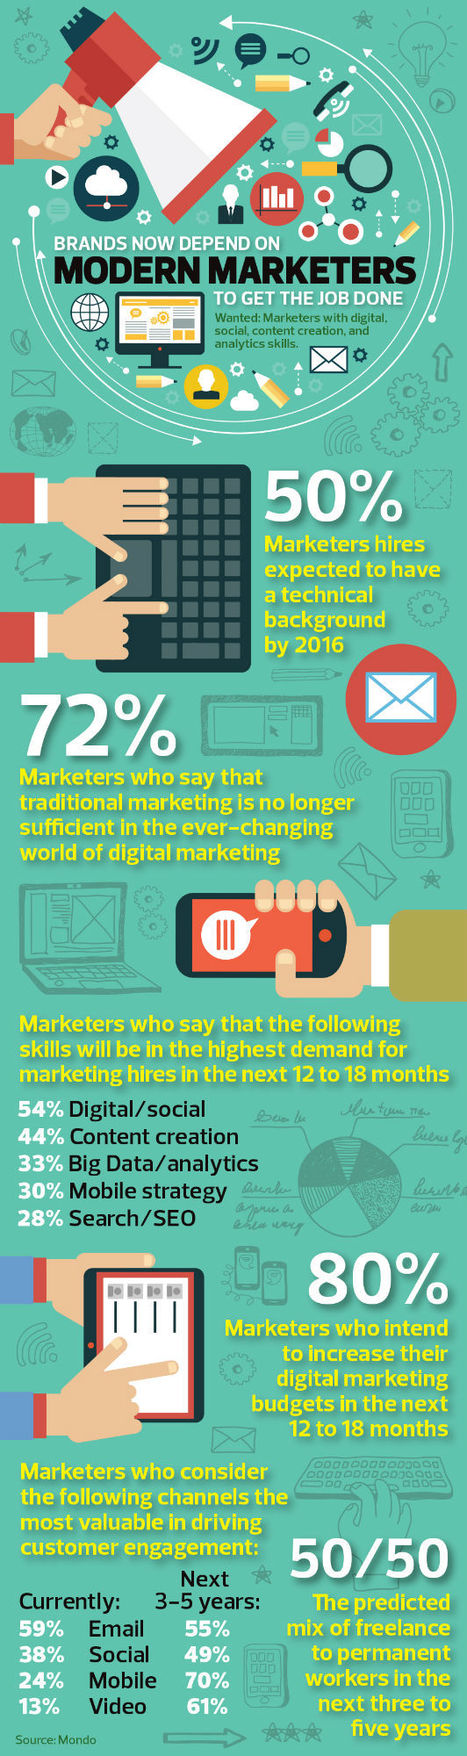 Brands Now Depend on Modern Marketers to Get the Job Done Infographic | Consumer Empowered Marketing | Scoop.it